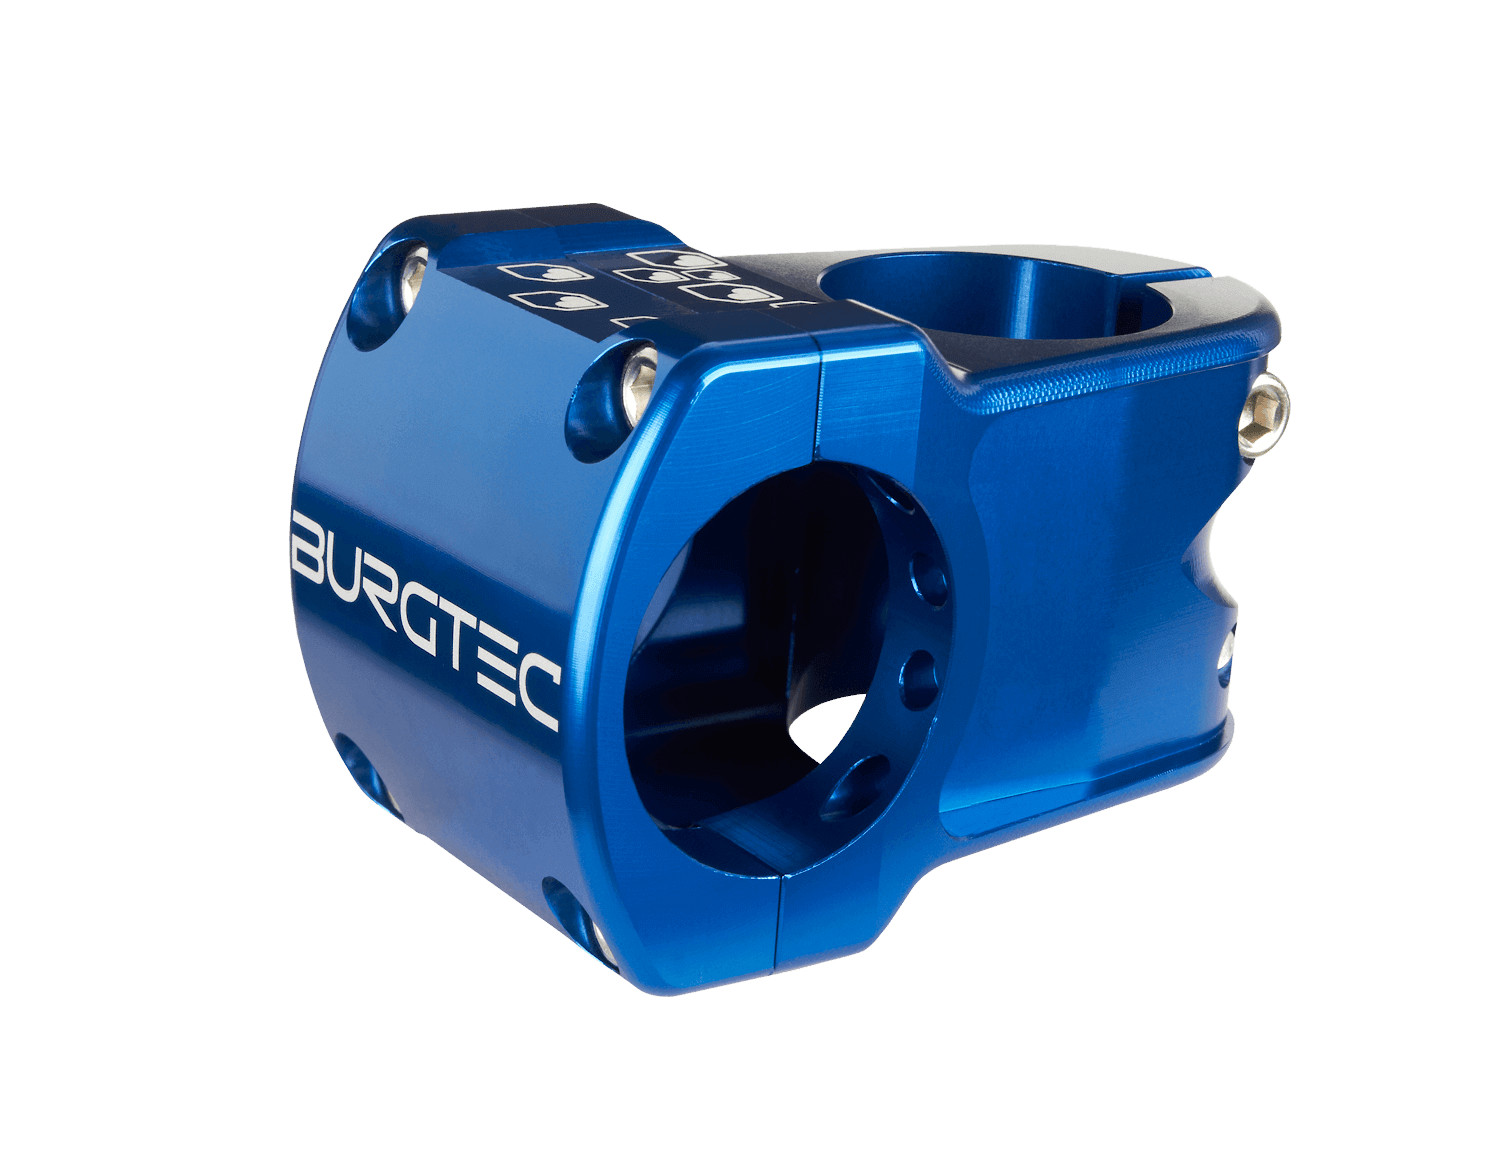 Enduro MK2 35 Stem (deep blue)